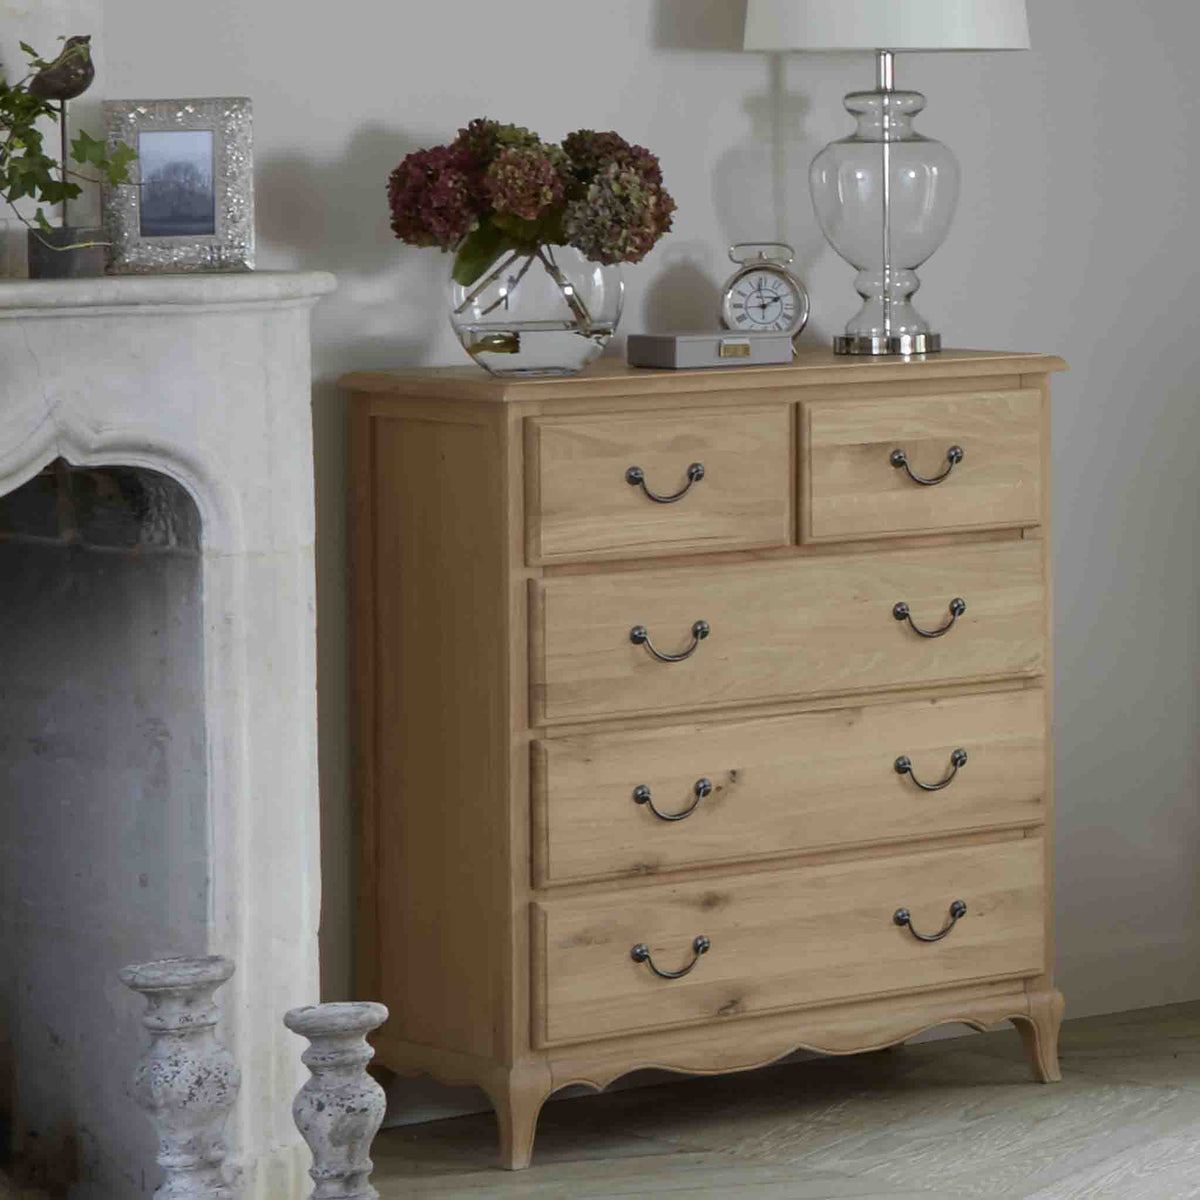 Lifestyle image of the Harrogate Oak 2 over 3 Chest of Drawers